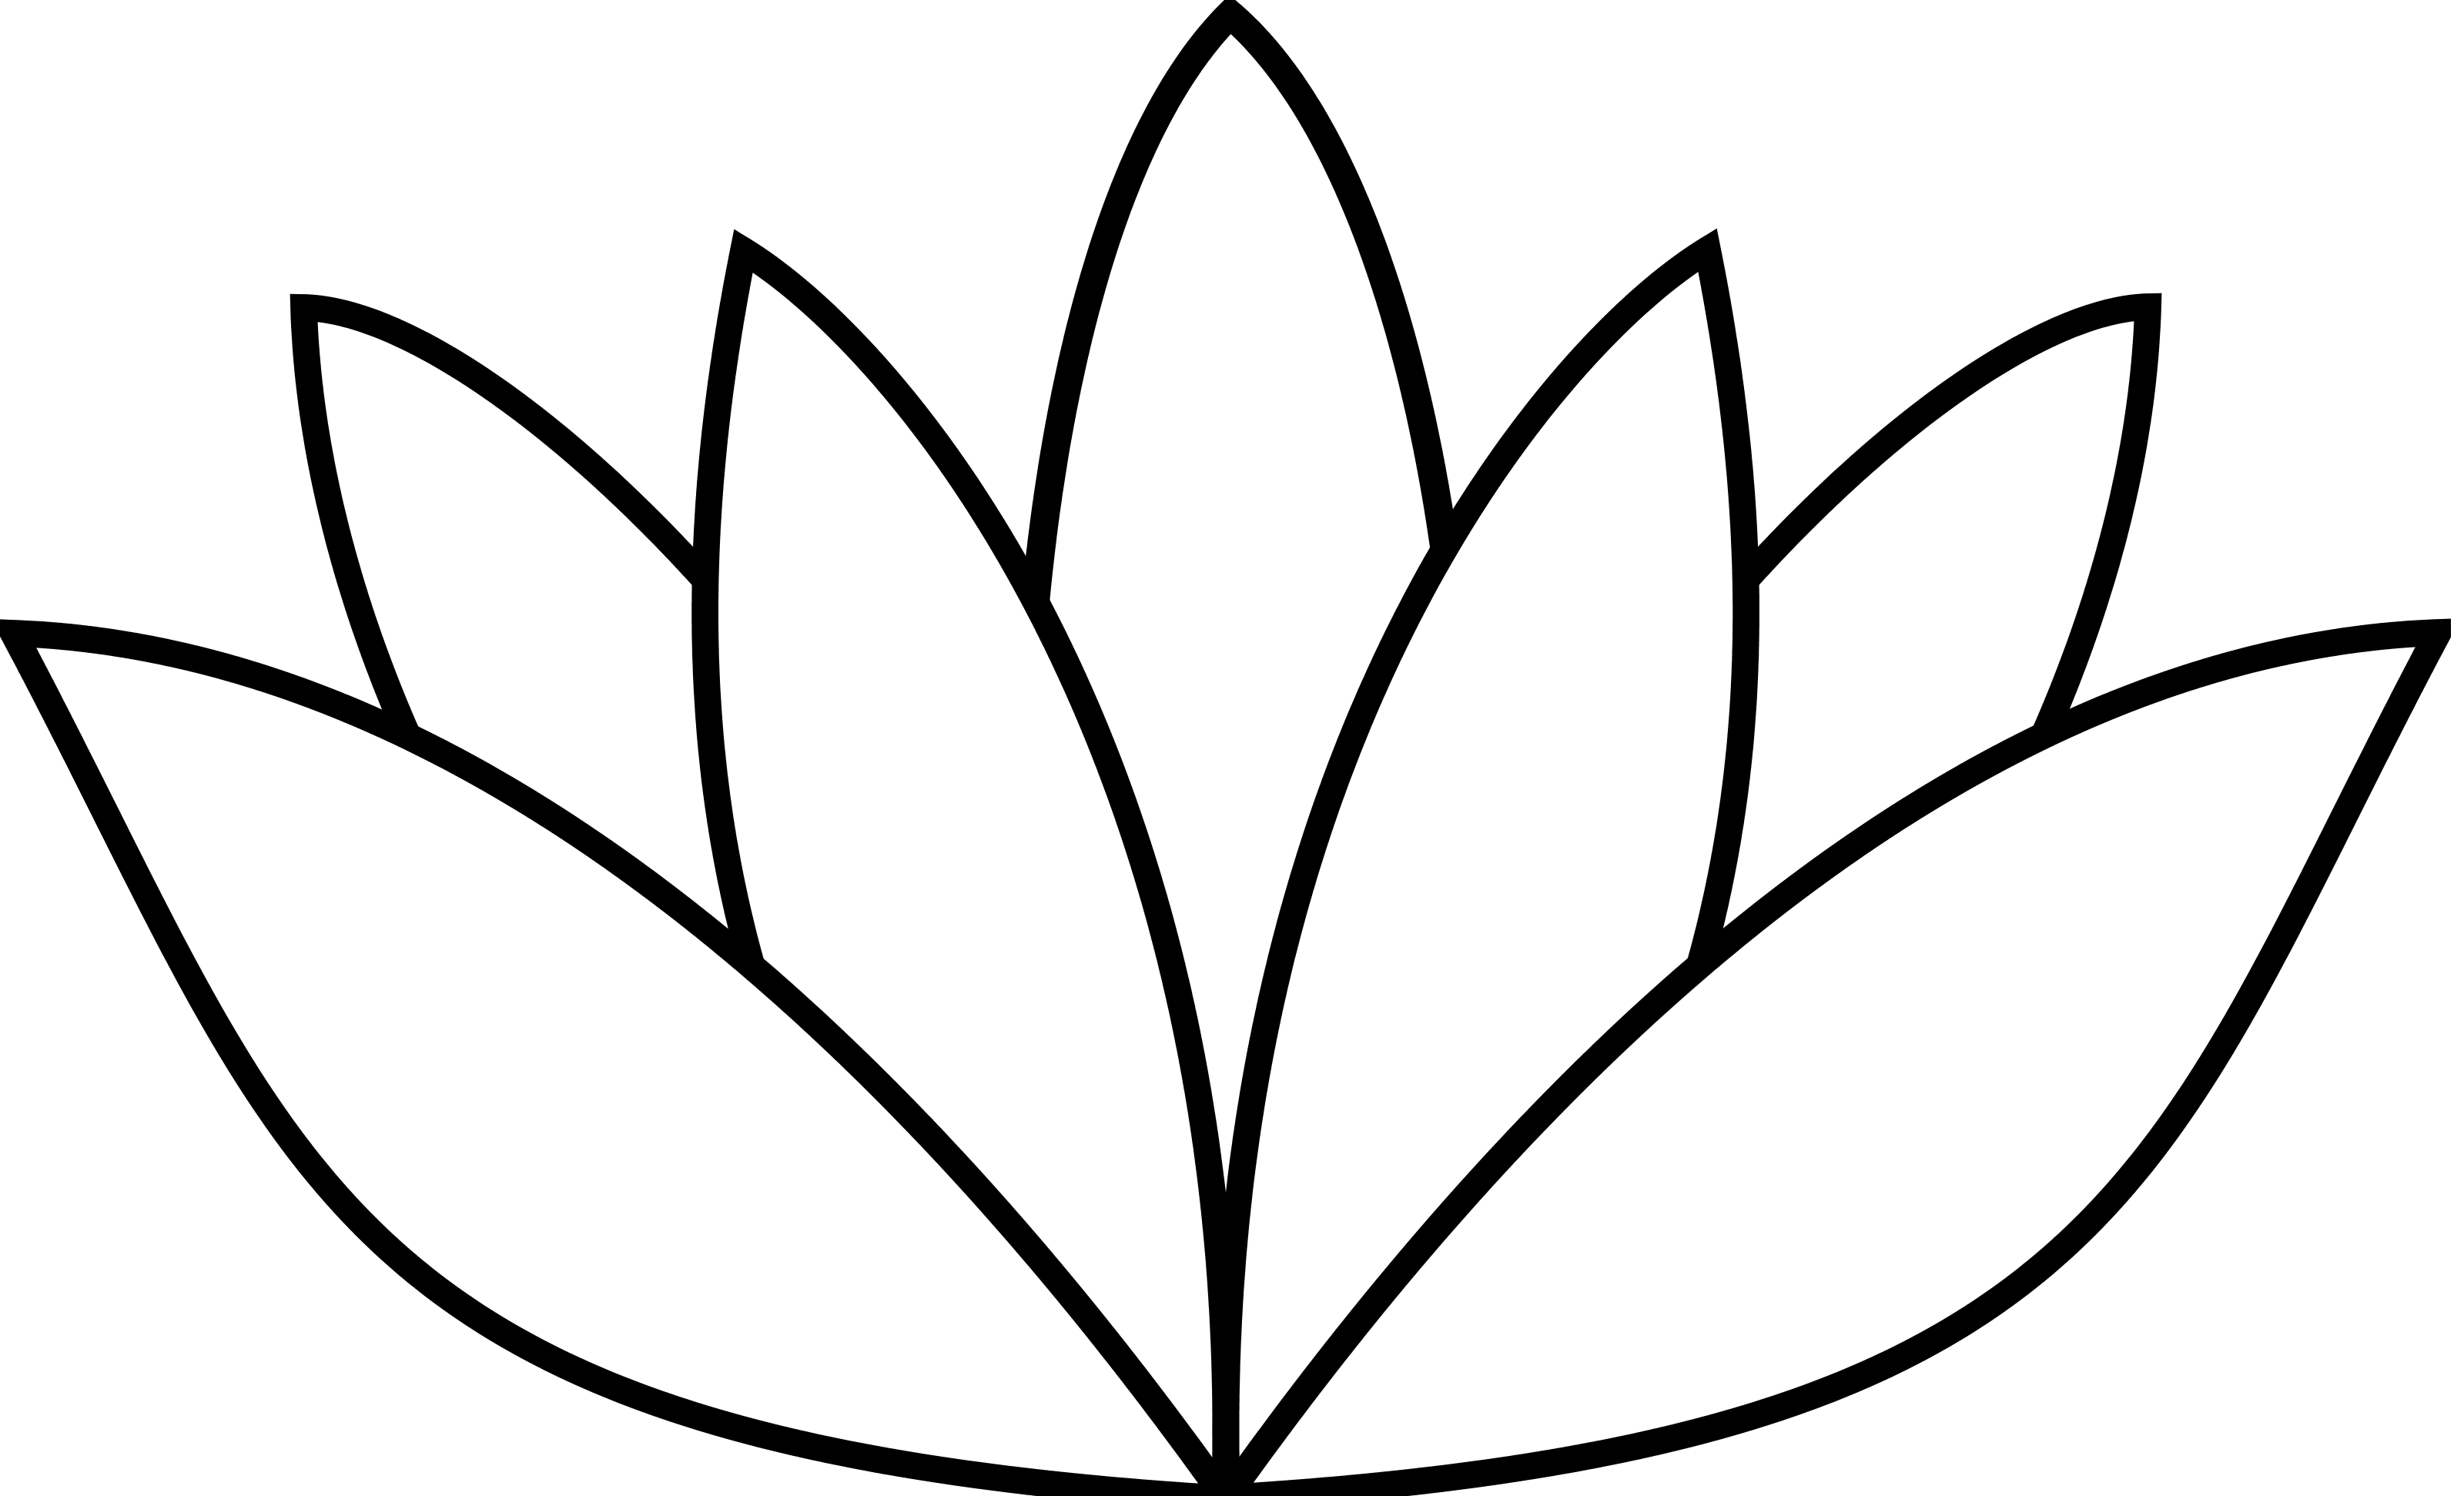 Lily pad flower clipart black and white image royalty free library white lotus flower SVG - ClipArt Best - ClipArt Best | lovely things ... image royalty free library